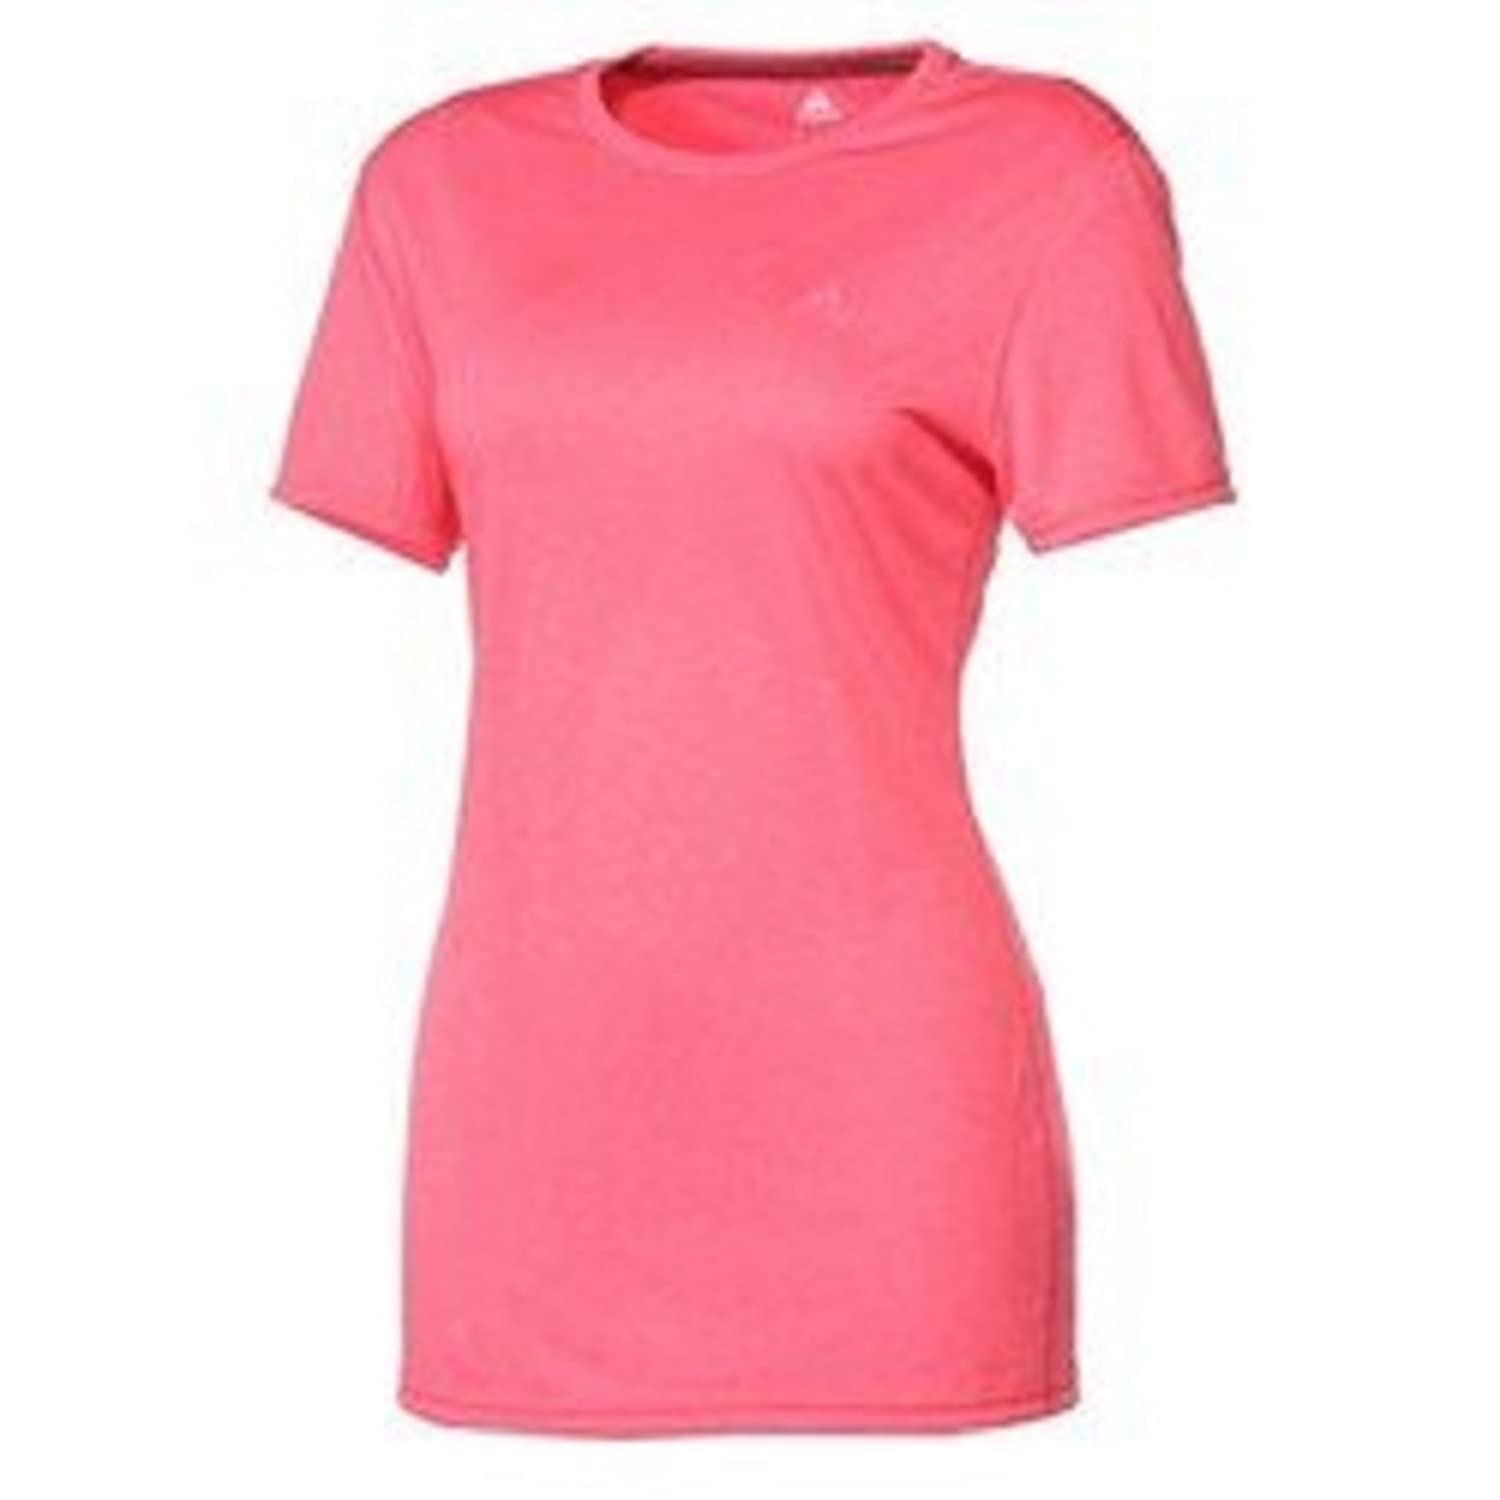 Adidas Women's ClimaTech Short-Sleeve Crew Neck Tee Xtra-Small Super Pink